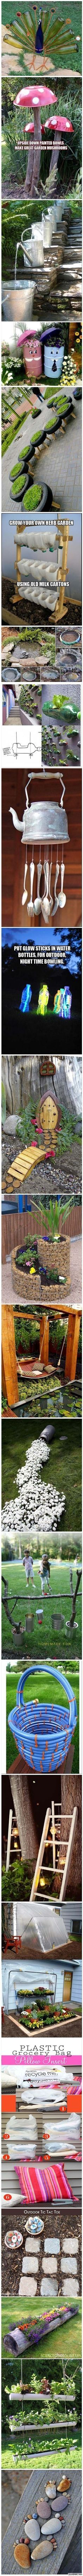 Simple Outdoor Ideas That Are Borderline Genius - Just DWL || The Ultimate Trolling